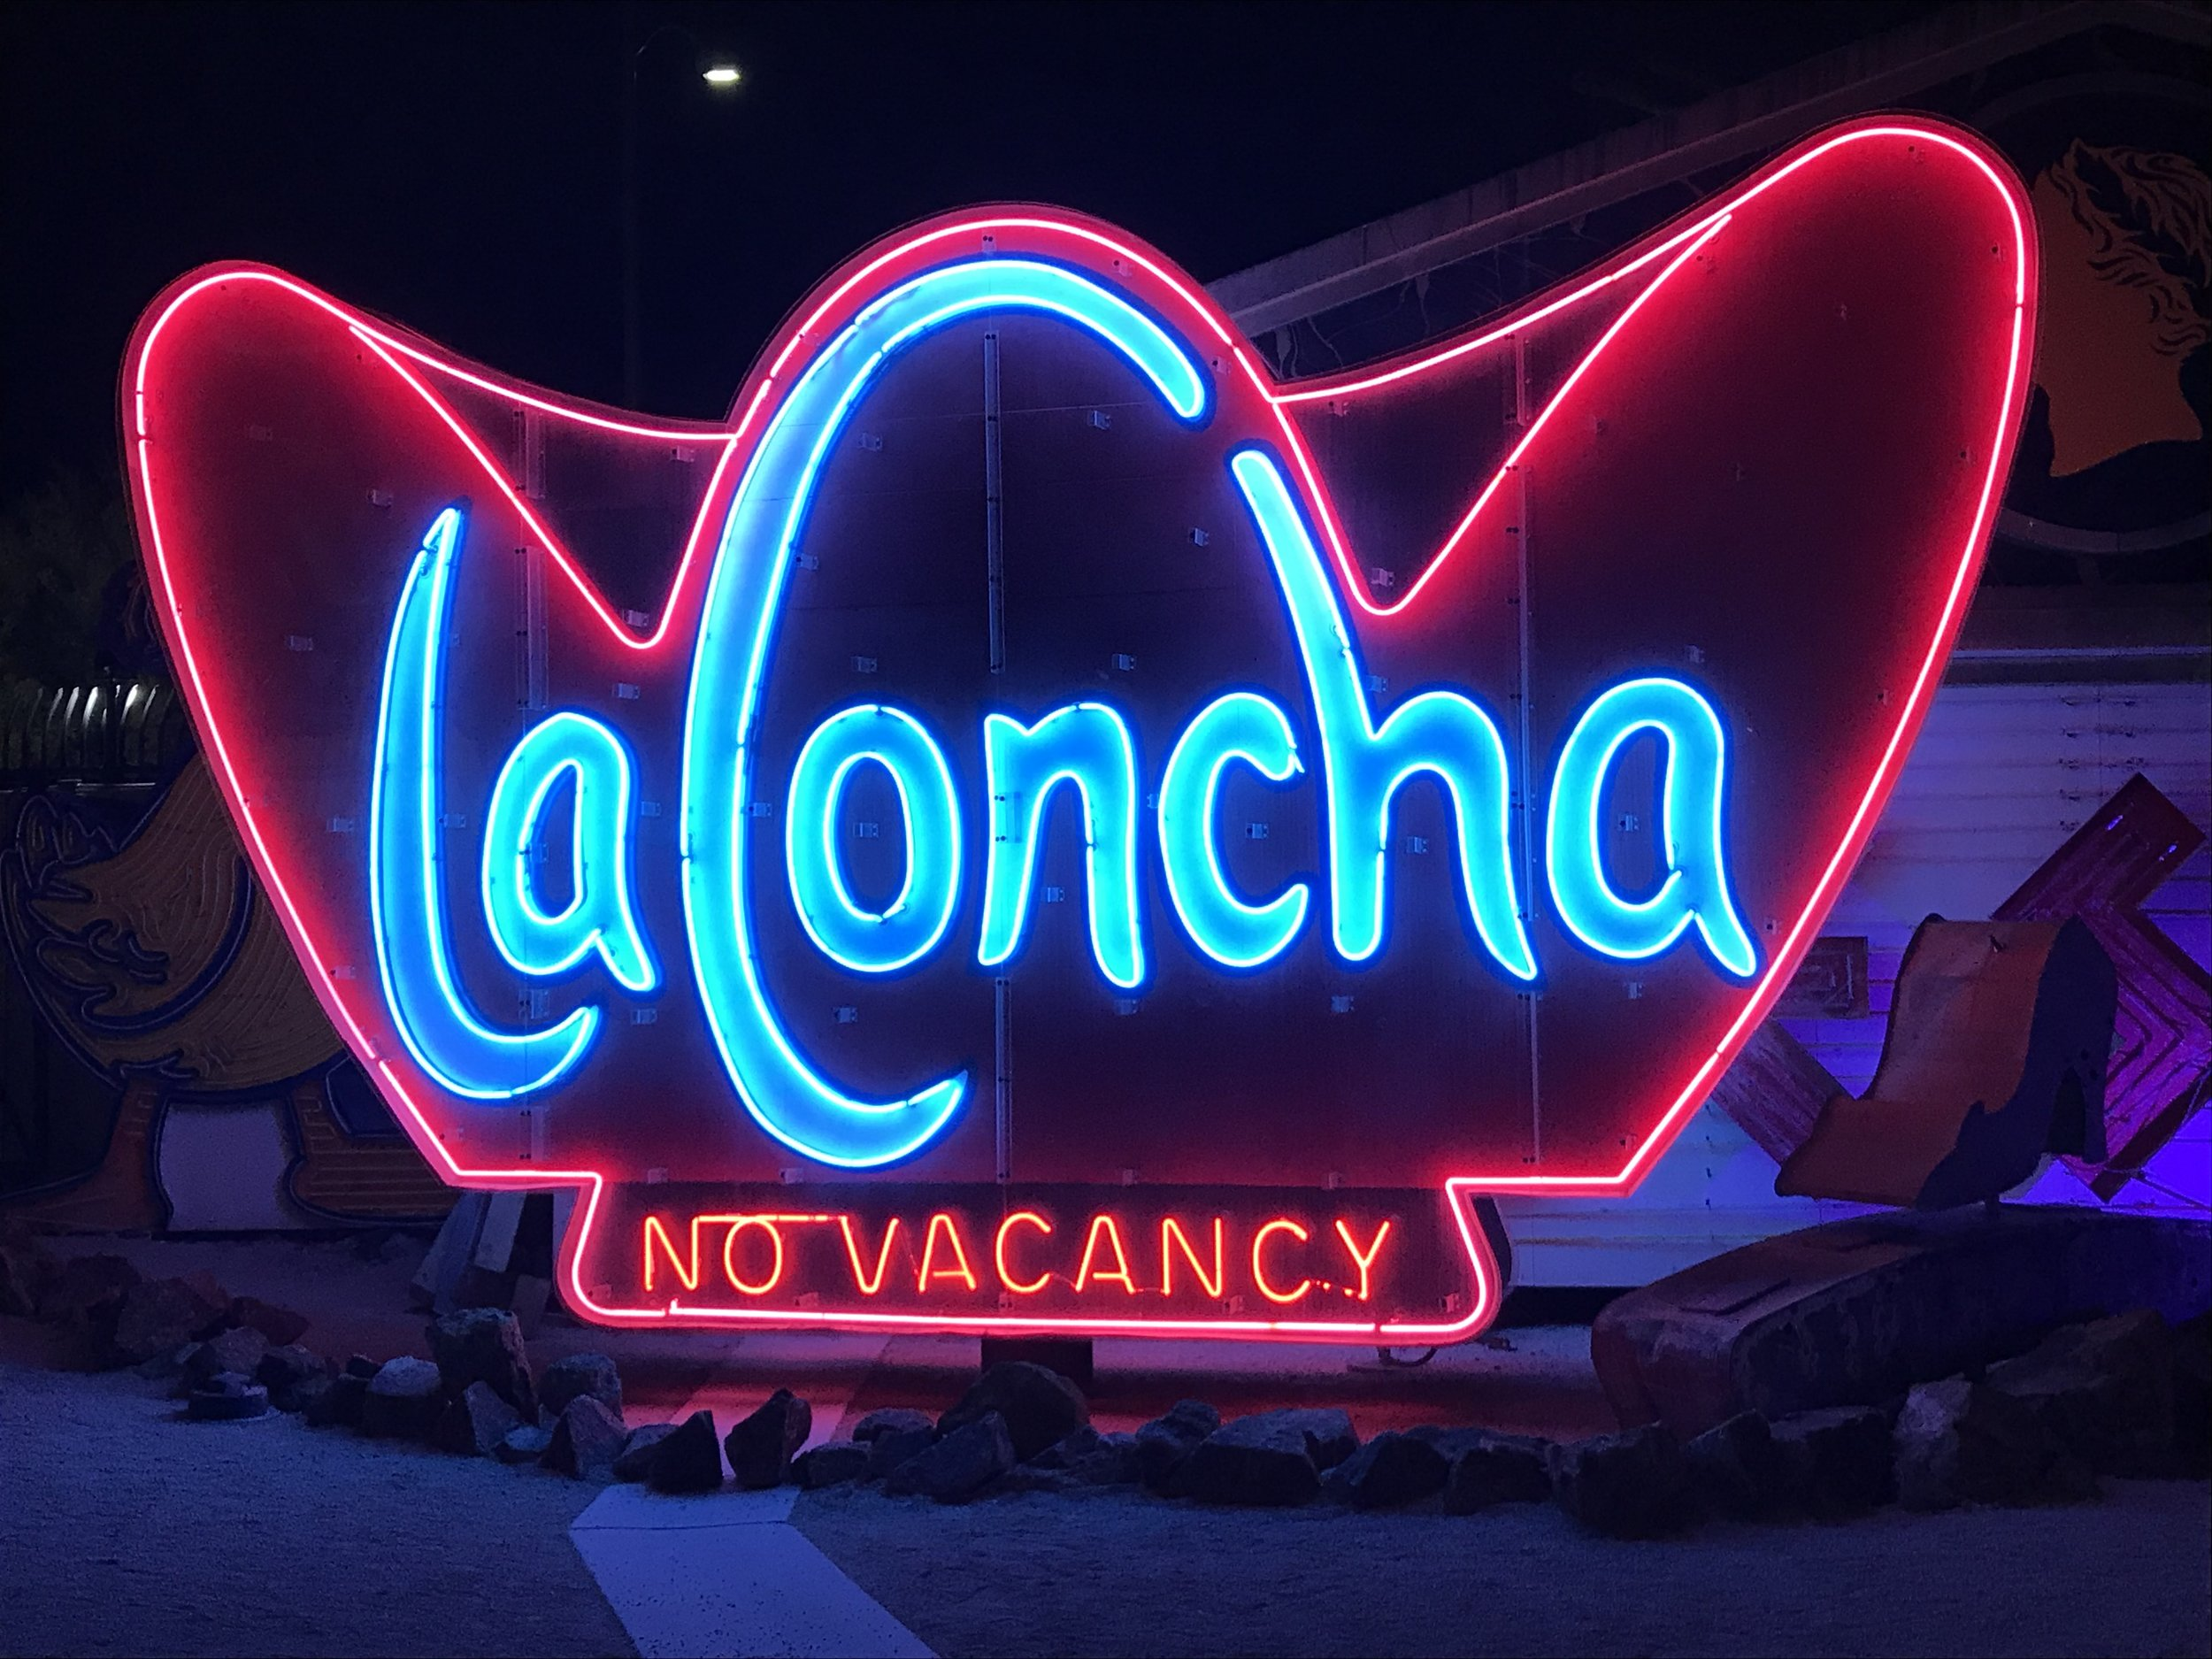 Whether or not signs are rehabilitated to function is decided on a case-by-case basis. La Concha's sign was relit for interpretive purposes, since the visitor's center is now housed in the moved original structure.  Image by Kim Campbell.